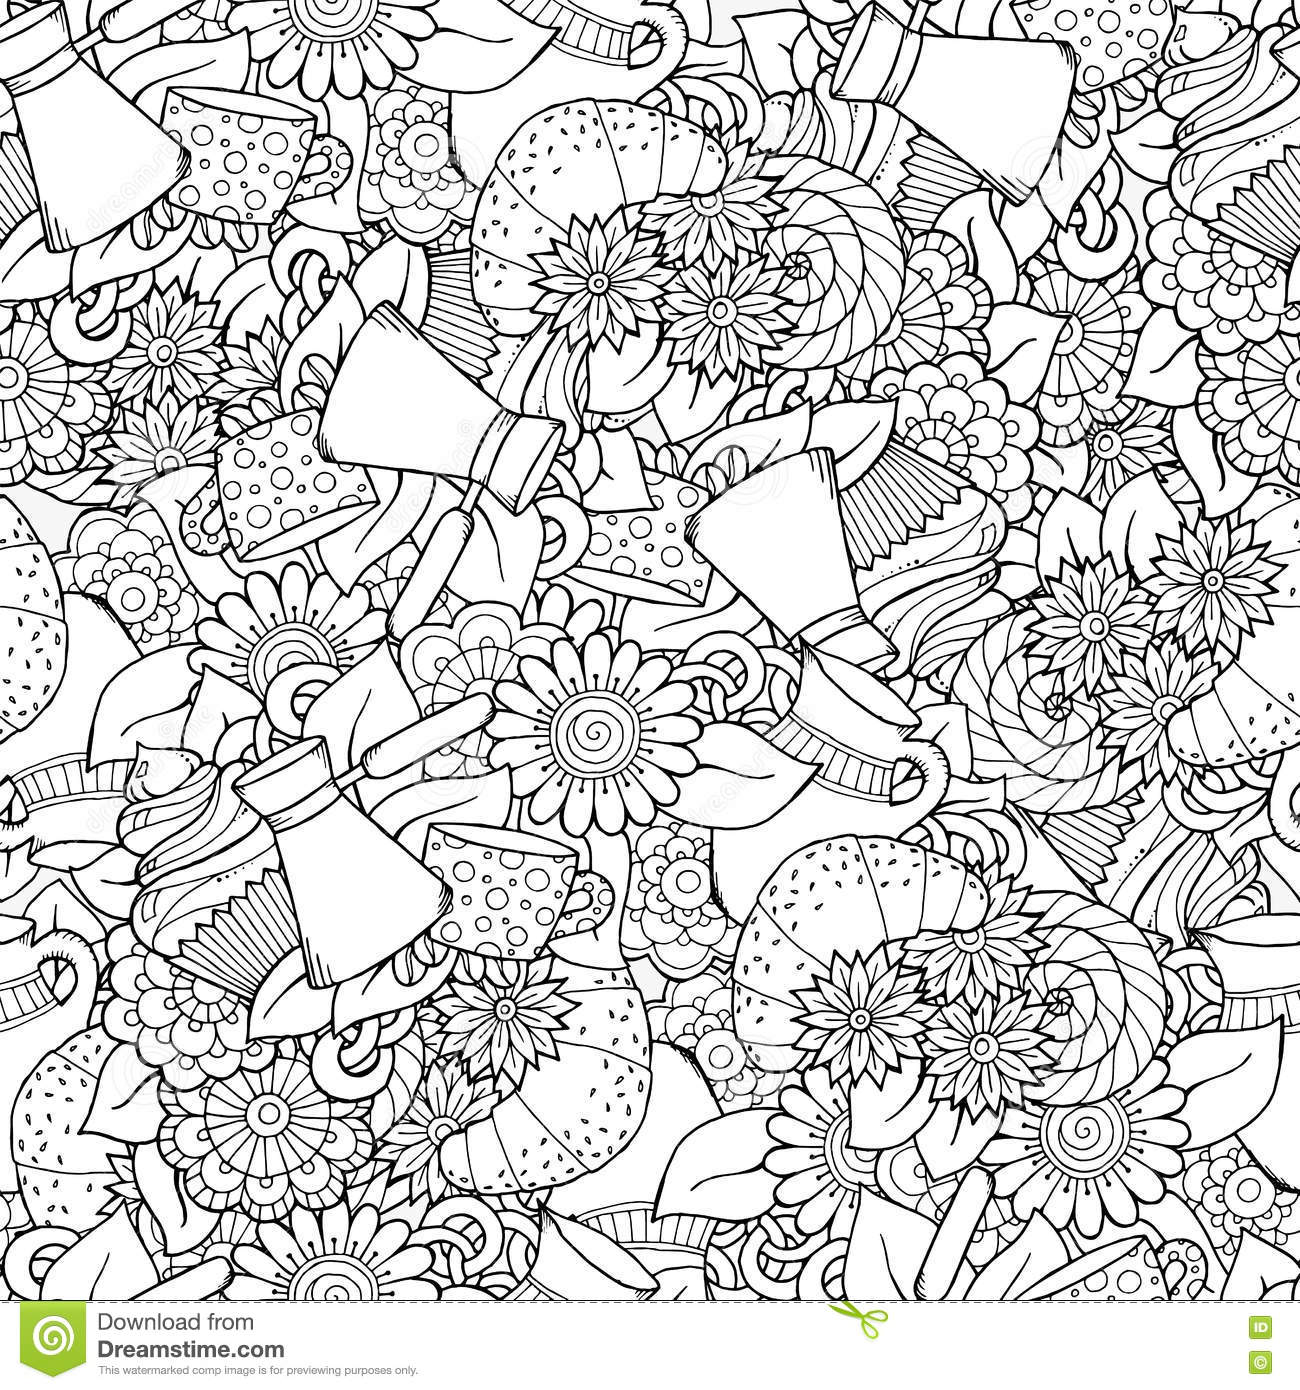 seamless doodle coffee pattern - photo #10